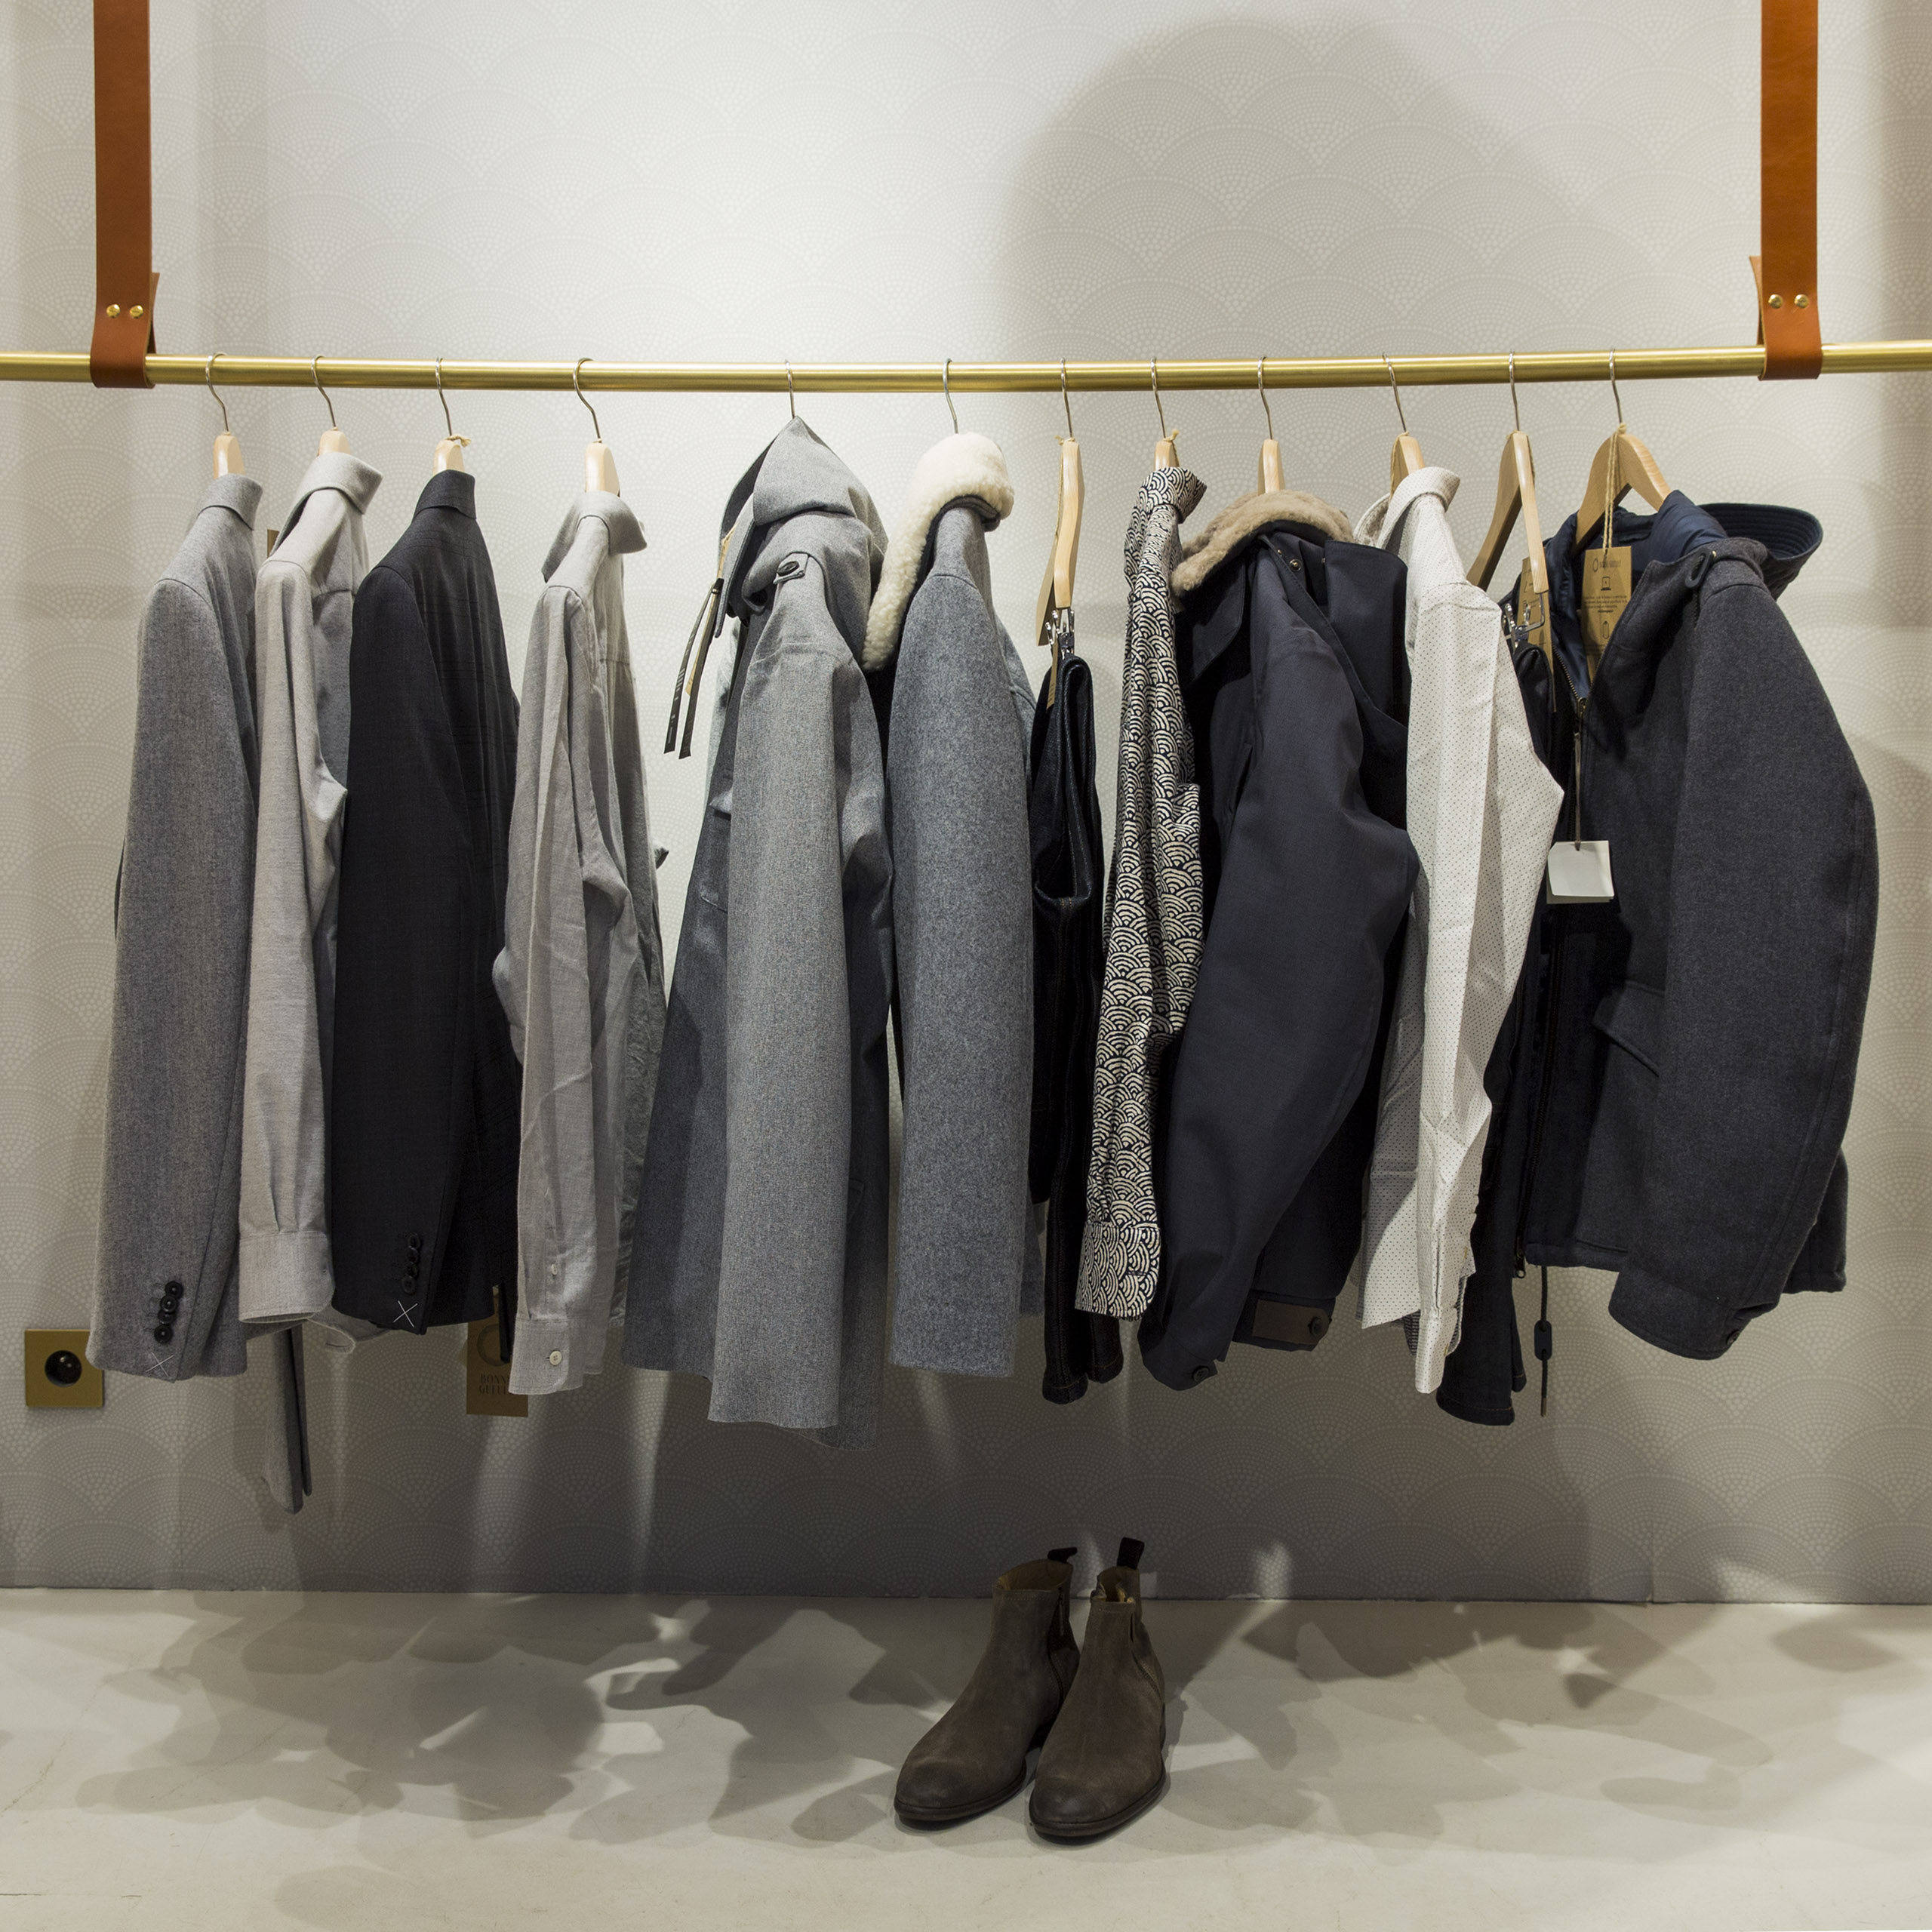 Paris – Geoffrey, Inside a Men's Fashion Startup 2